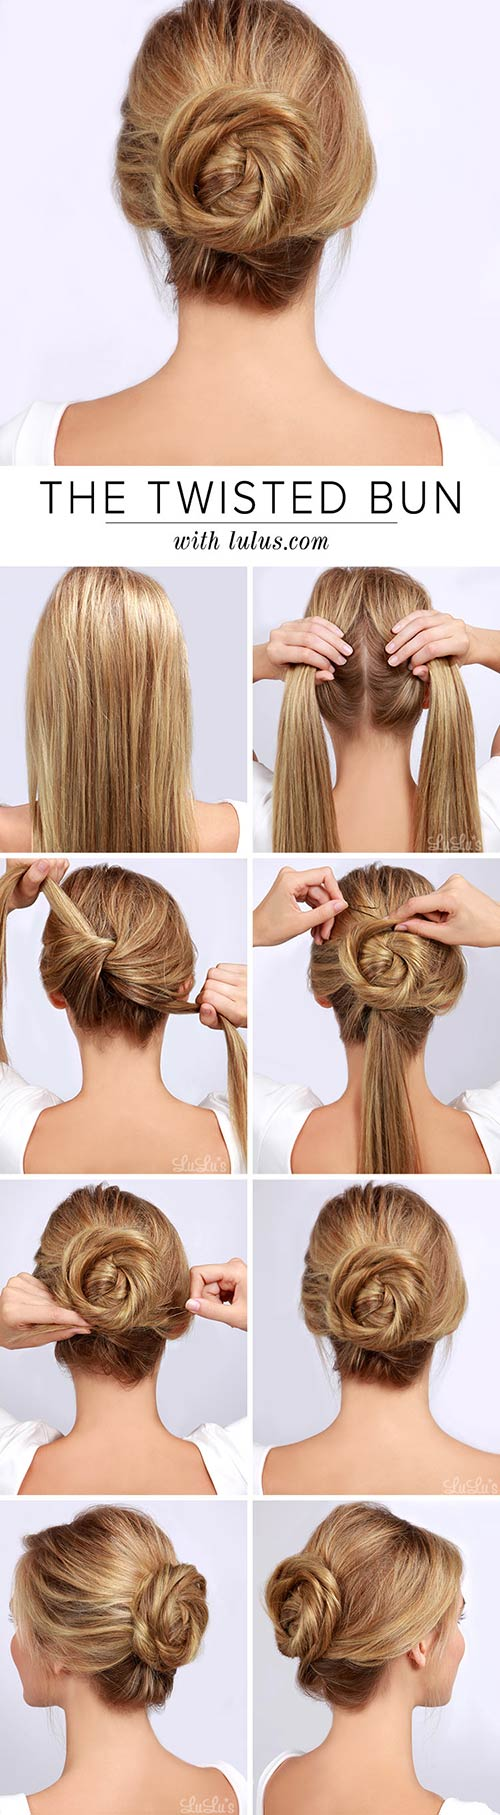 Updo Hairstyles For Long Hair Will Reveal Your Femininity